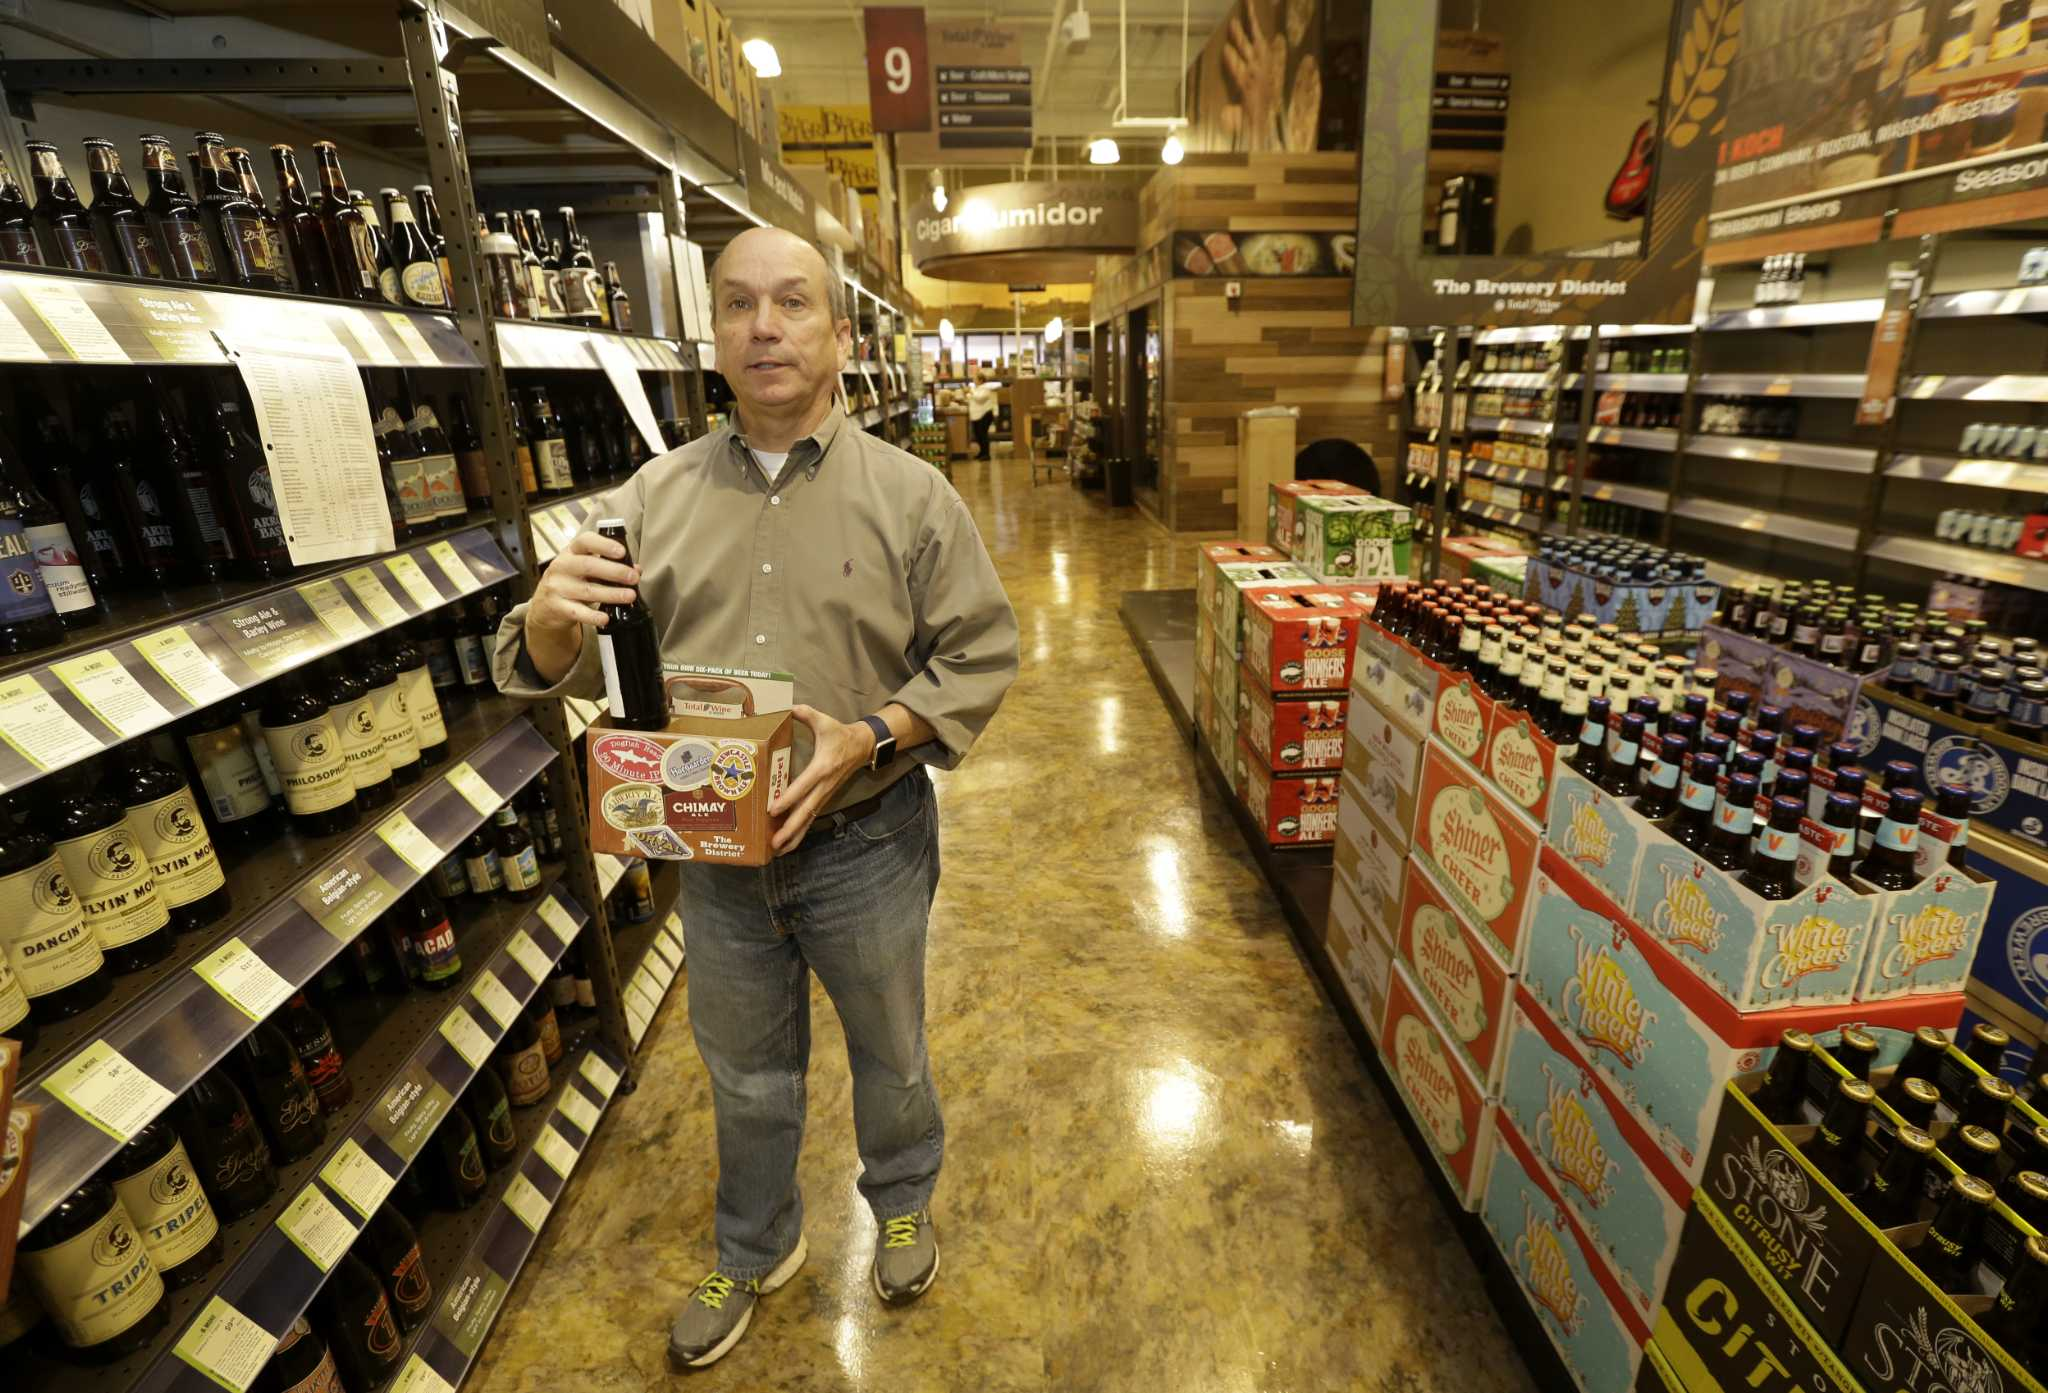 Total Wine plans Pearland expansion - HoustonChronicle.com